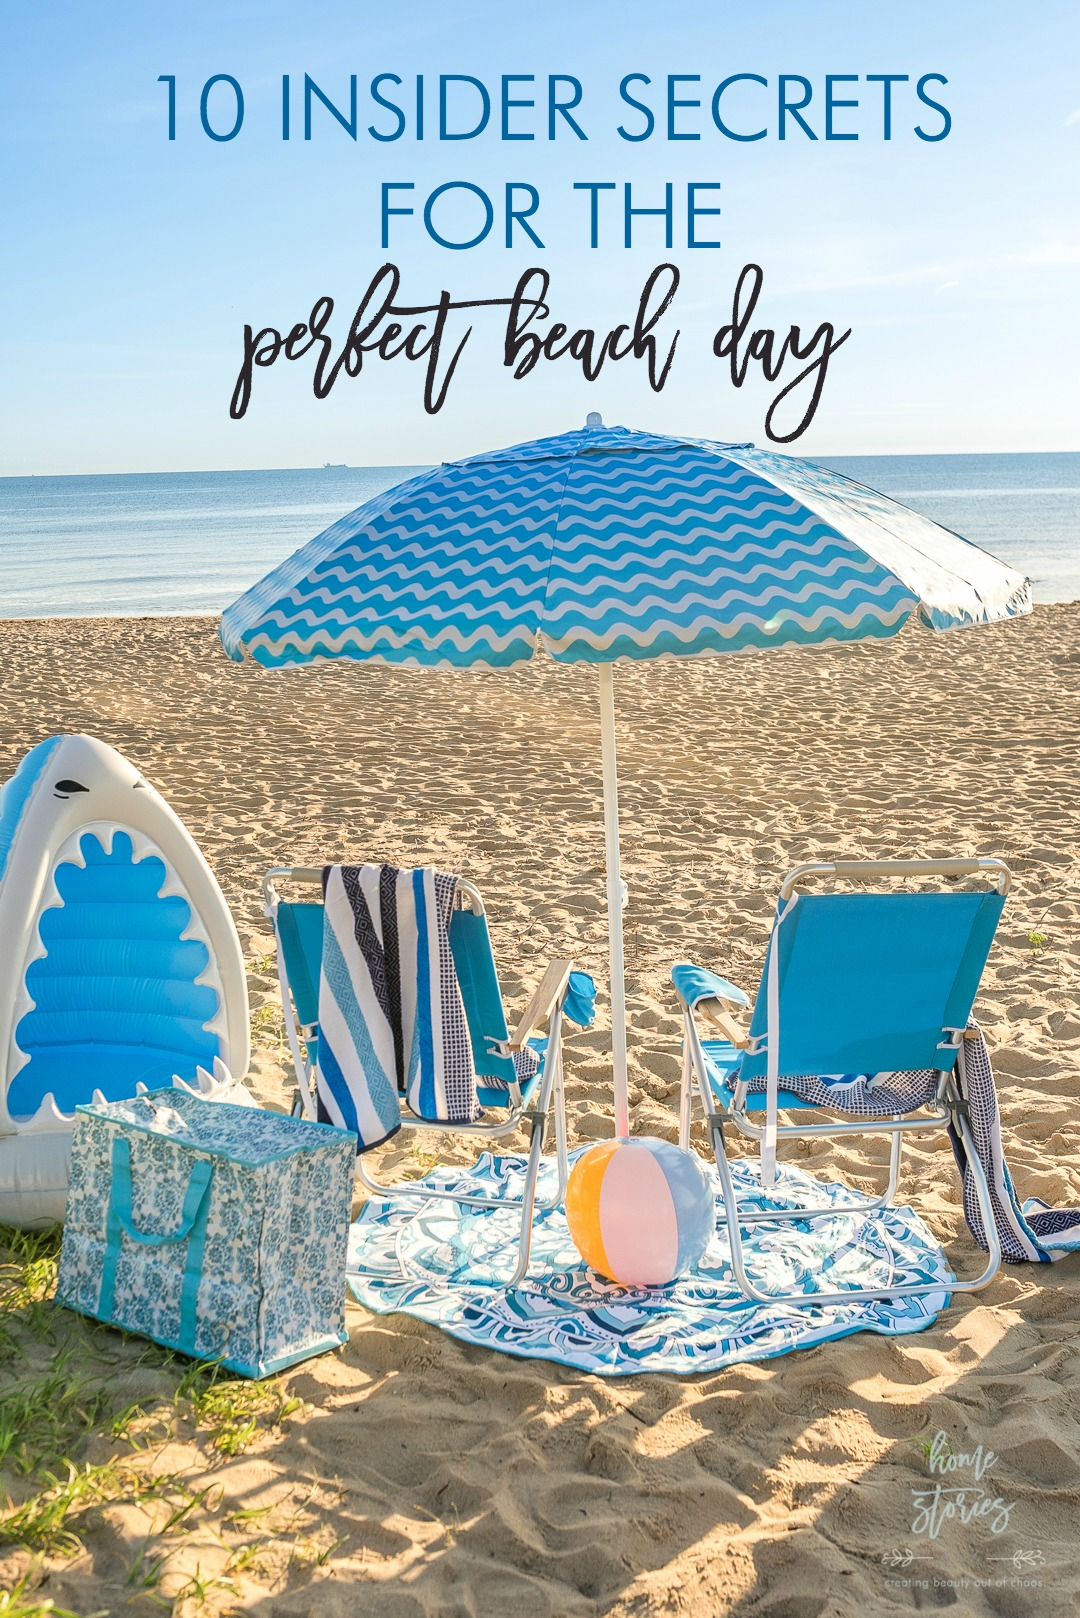 insider tips for planning beach day